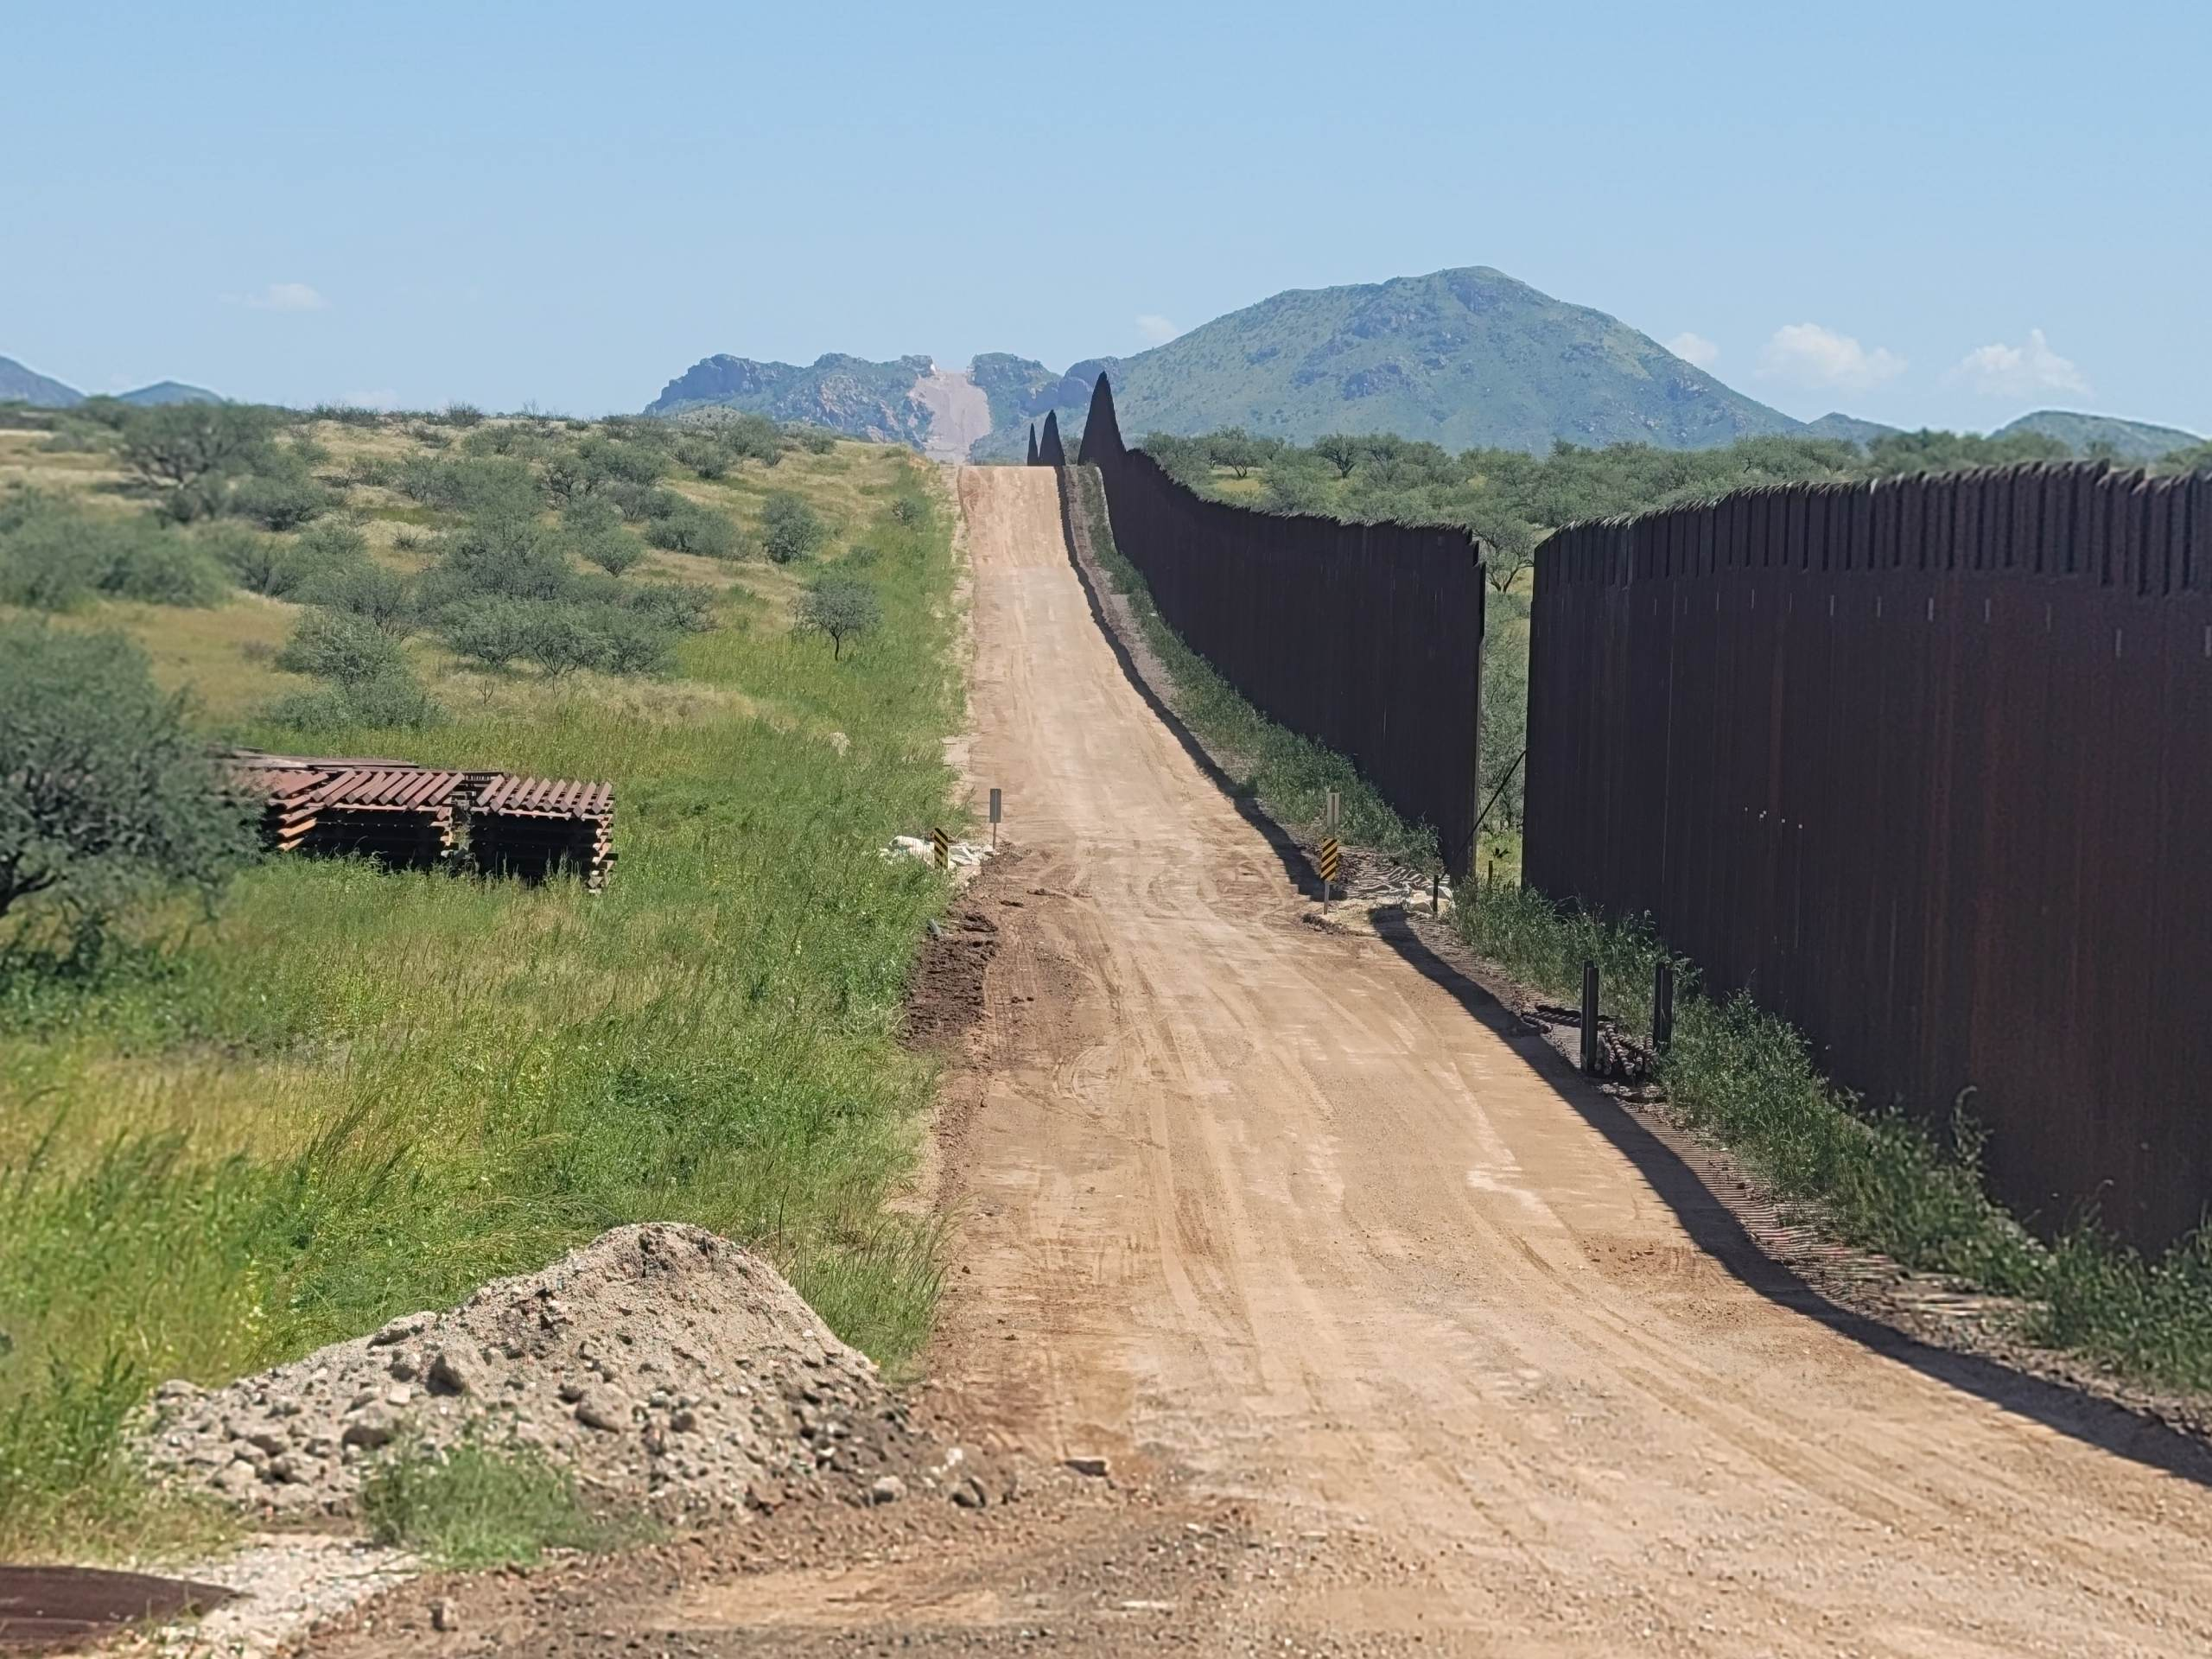 EXCLUSIVE: Large Sections of the Border Wall Have Been REMOVED and Left WIDE OPEN Along Heavily Trafficked Drug Route in Southern Arizona